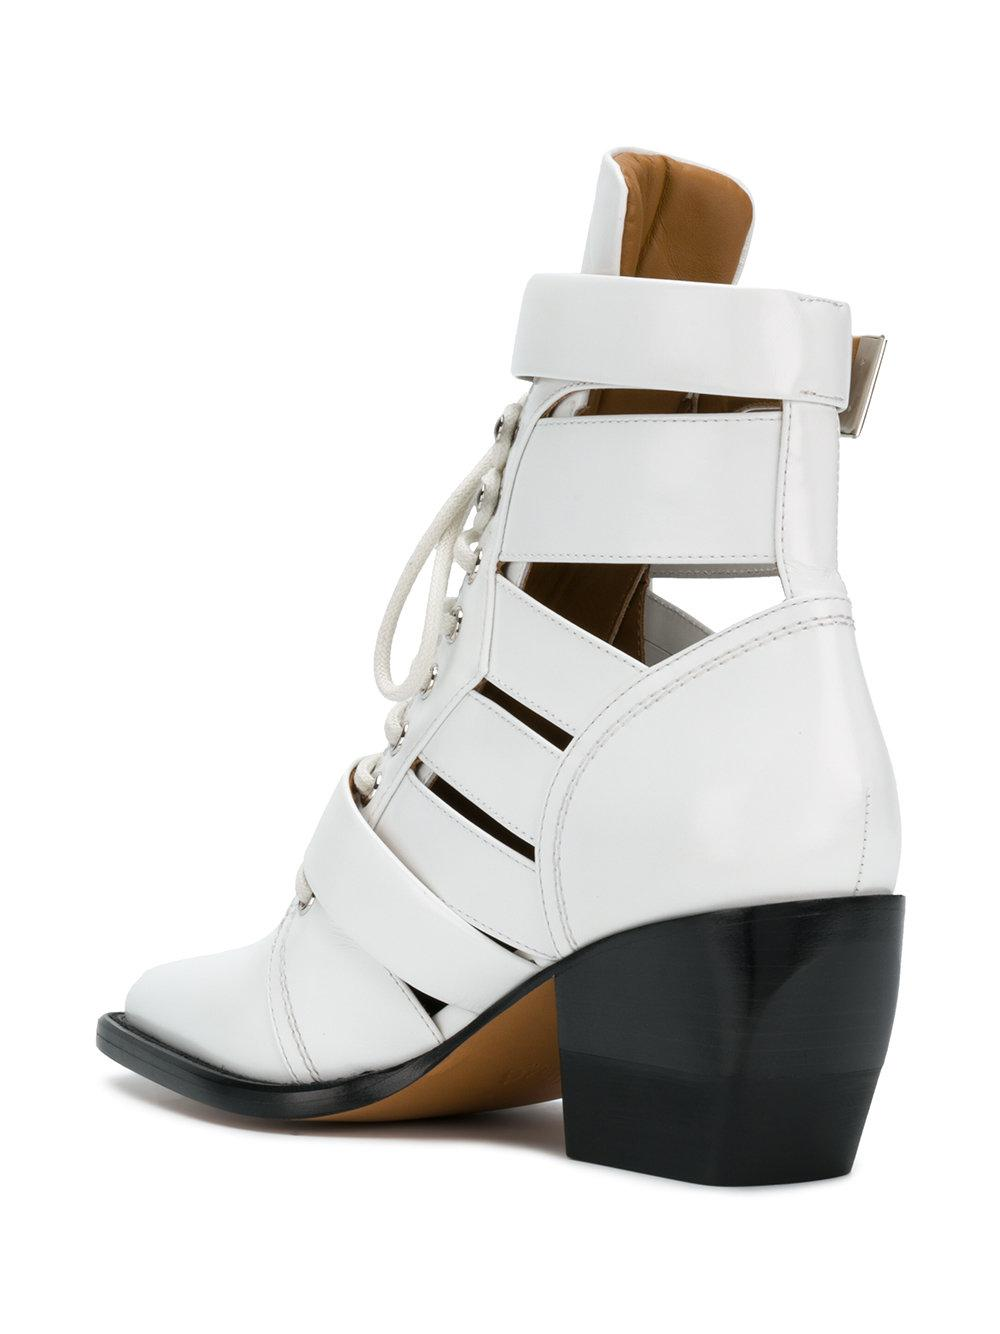 Chloé Leather Rylee Medium Boots in White